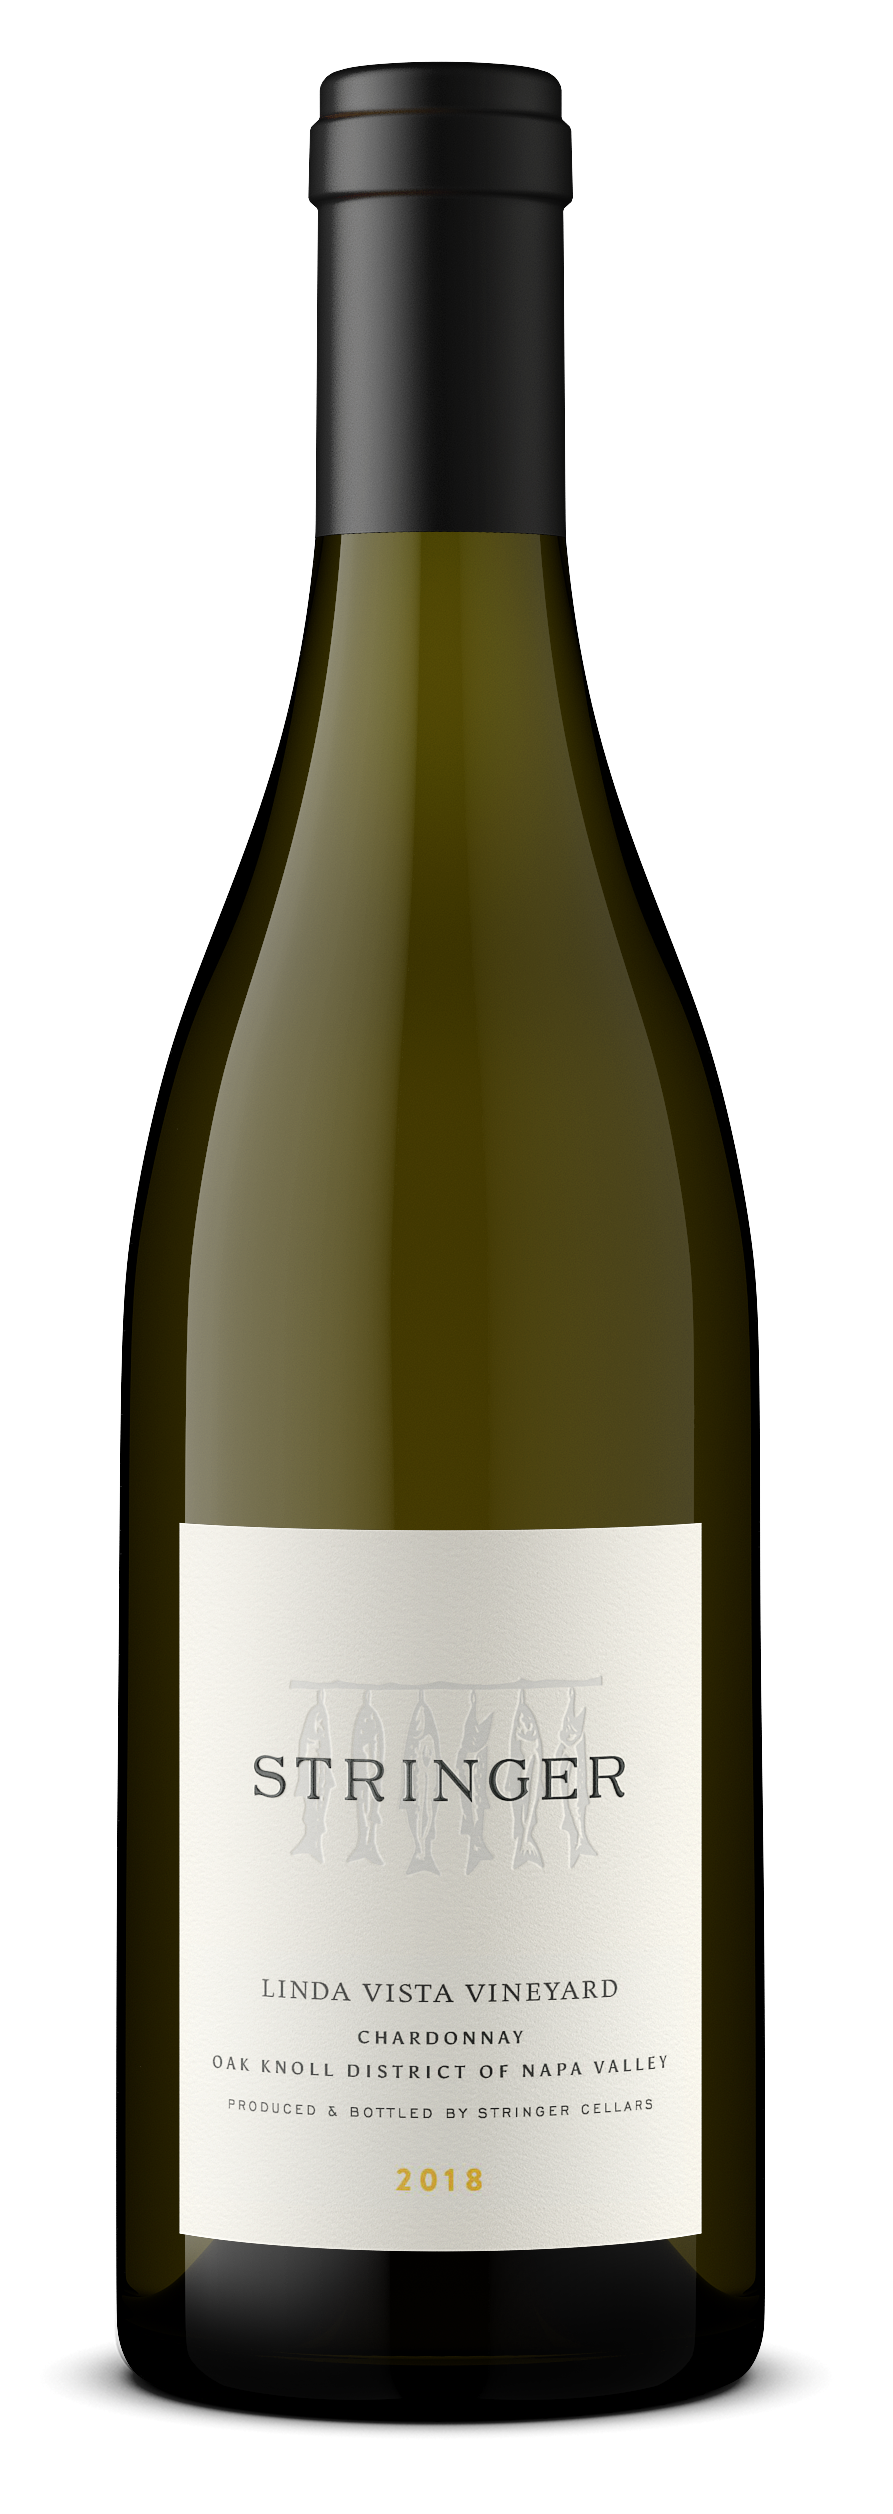 Linda Vista Vineyard Chardonnay 2018 Oak Knoll District of Napa Valley—CA - Stringer Cellars